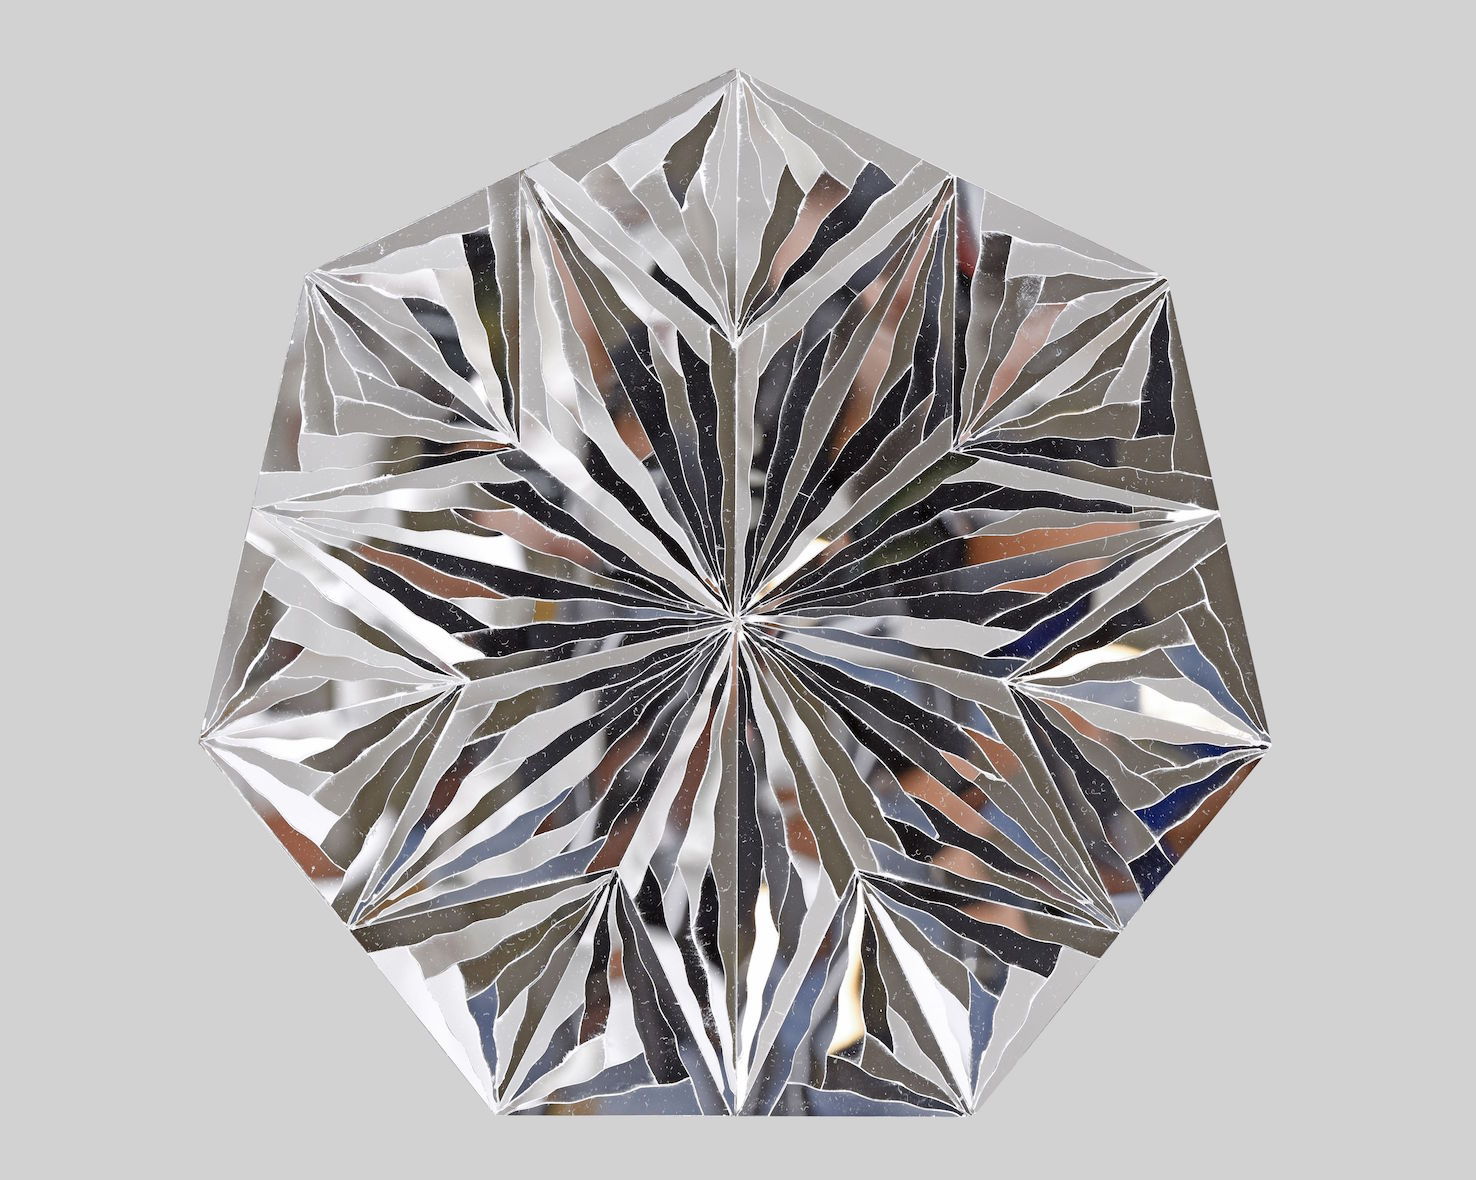 Monir Farmanfarmaian_Untitled (Heptagon)_2016_Mirror on plexiglass_33 cm in diameter - smaller size.jpg